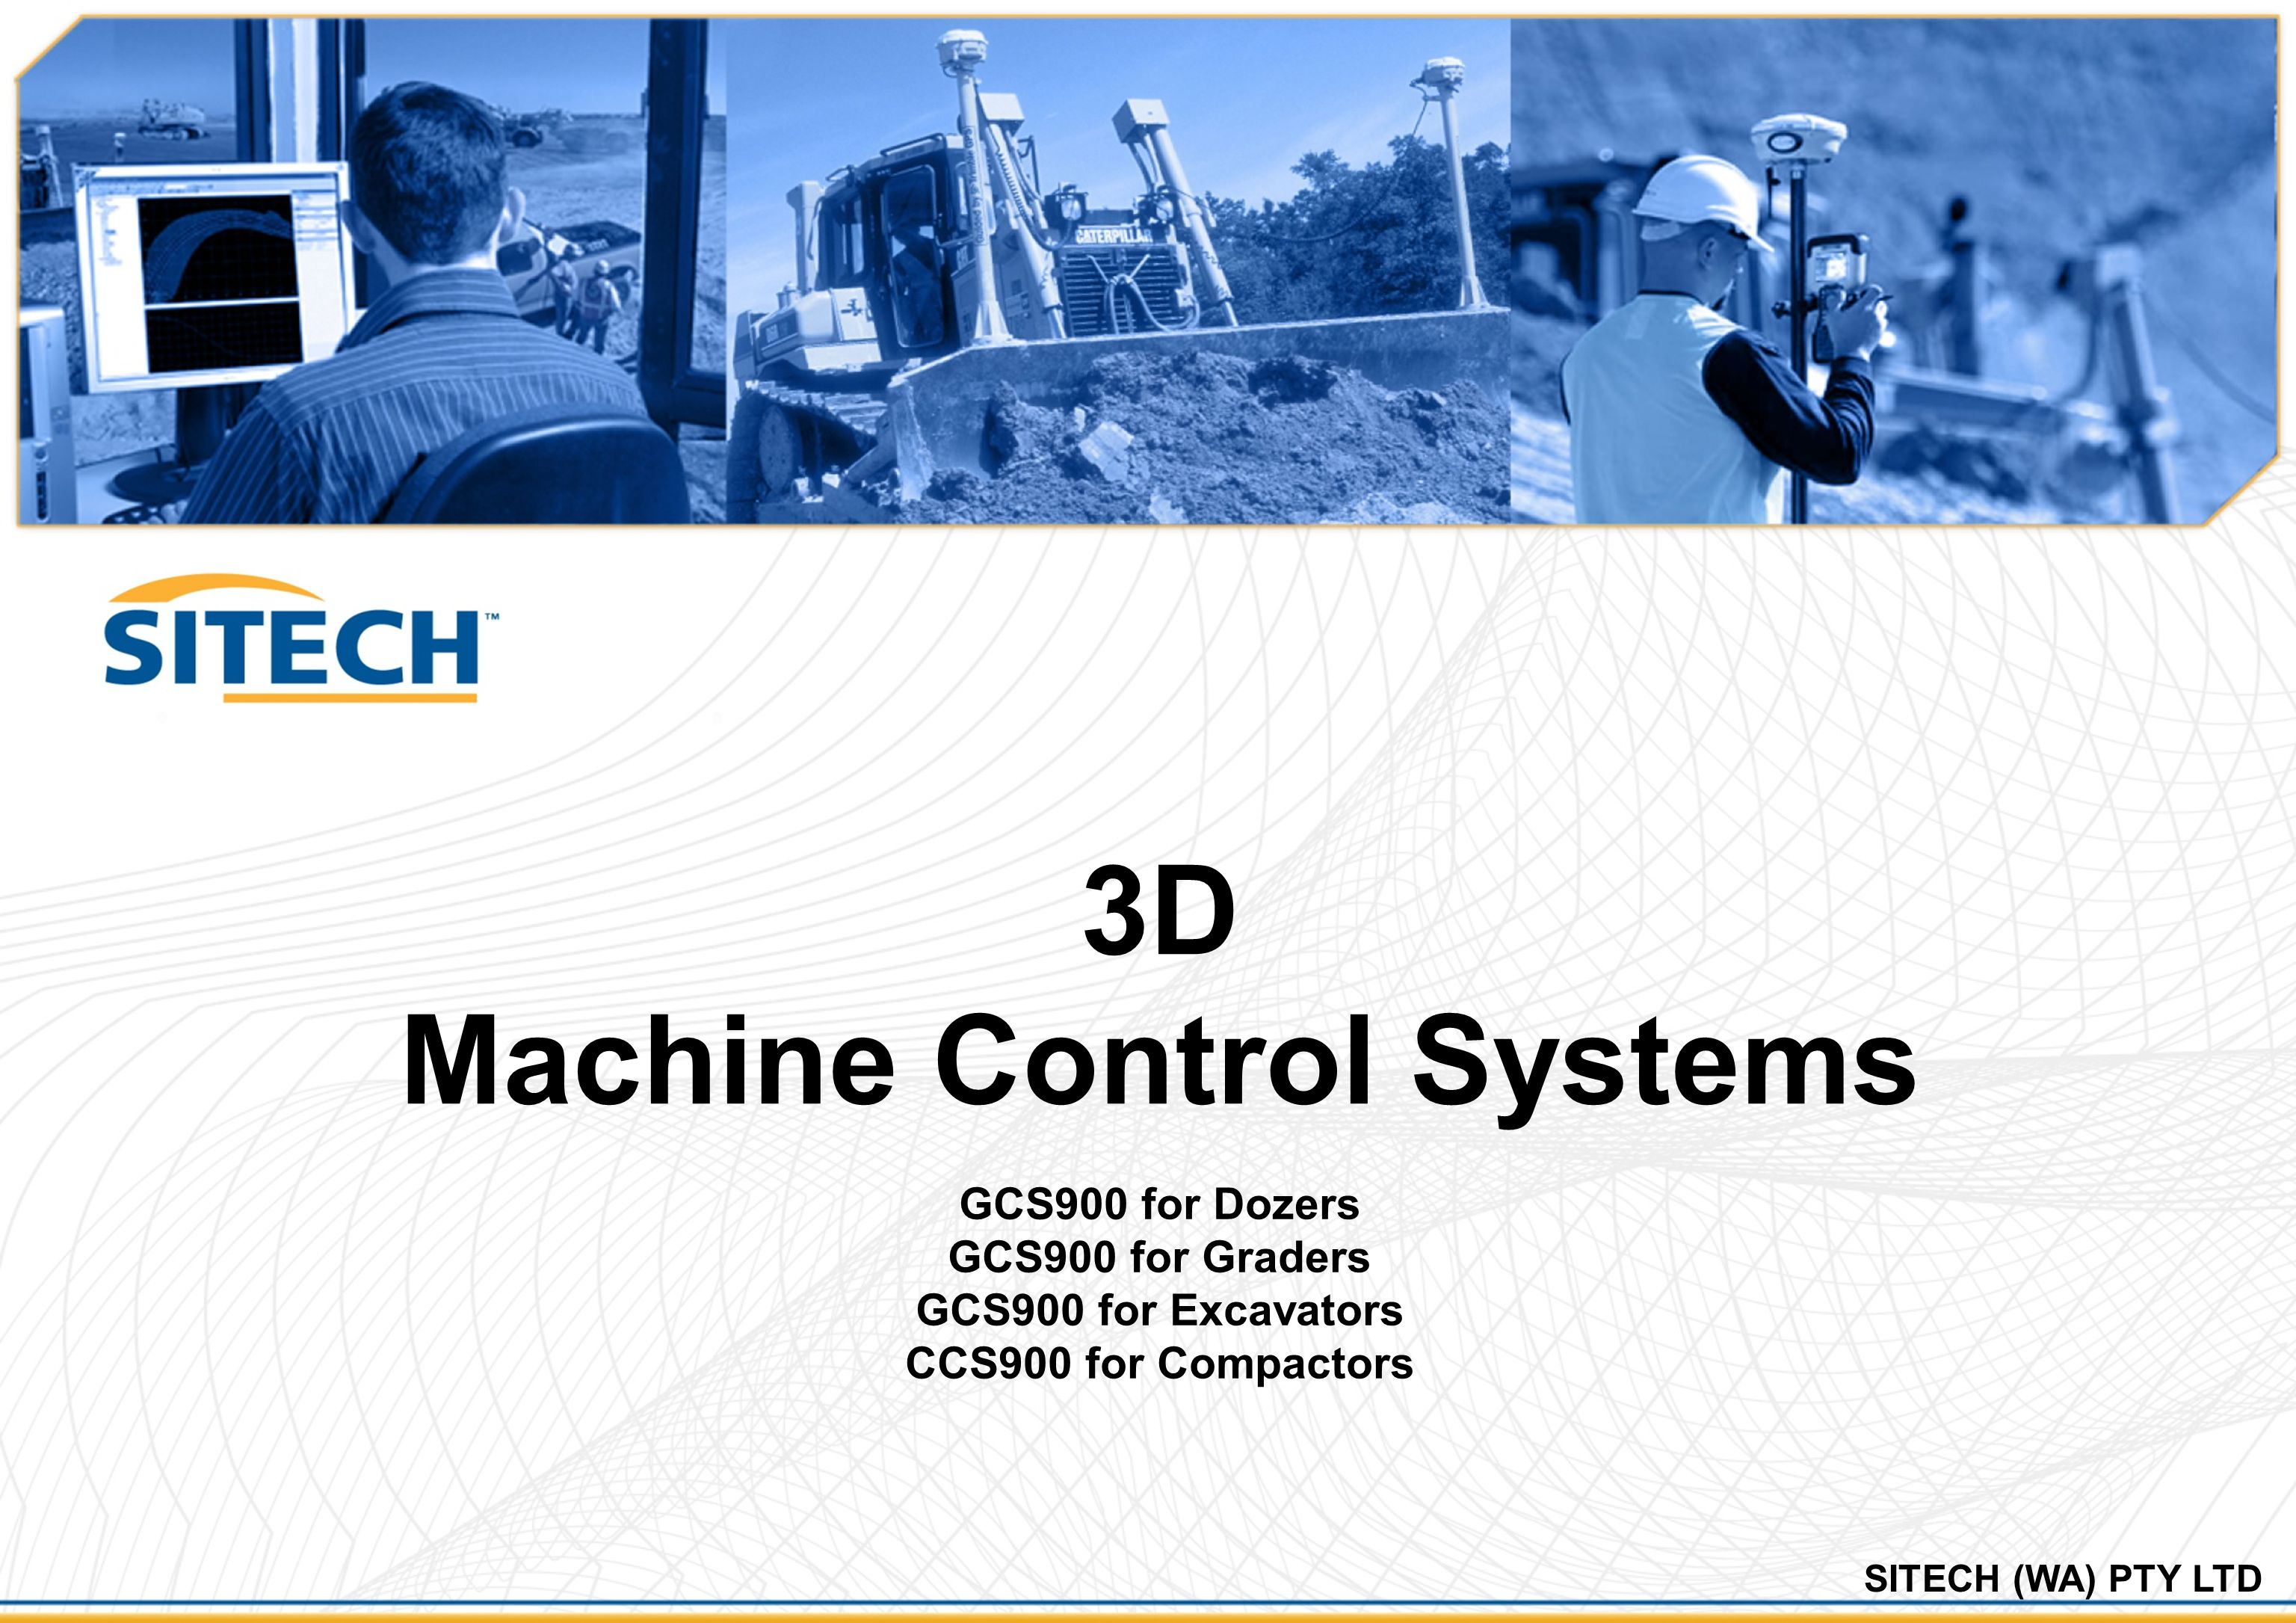 GCS900 – Grade Control System for Excavators  3D machine control system for the excavator bucket  Configurations: –Dual antenna GPS/GLONASS system –Single antenna GPS/GLONASS system –UTS Single system  Multiple language support  Multiple bucket support  Tilt bucket support  VA boom support  Indication system  Available for all machine manufacturers and sizes  Provides fine grading accuracies –<2-3cm with GPS/GLONASS or UTS